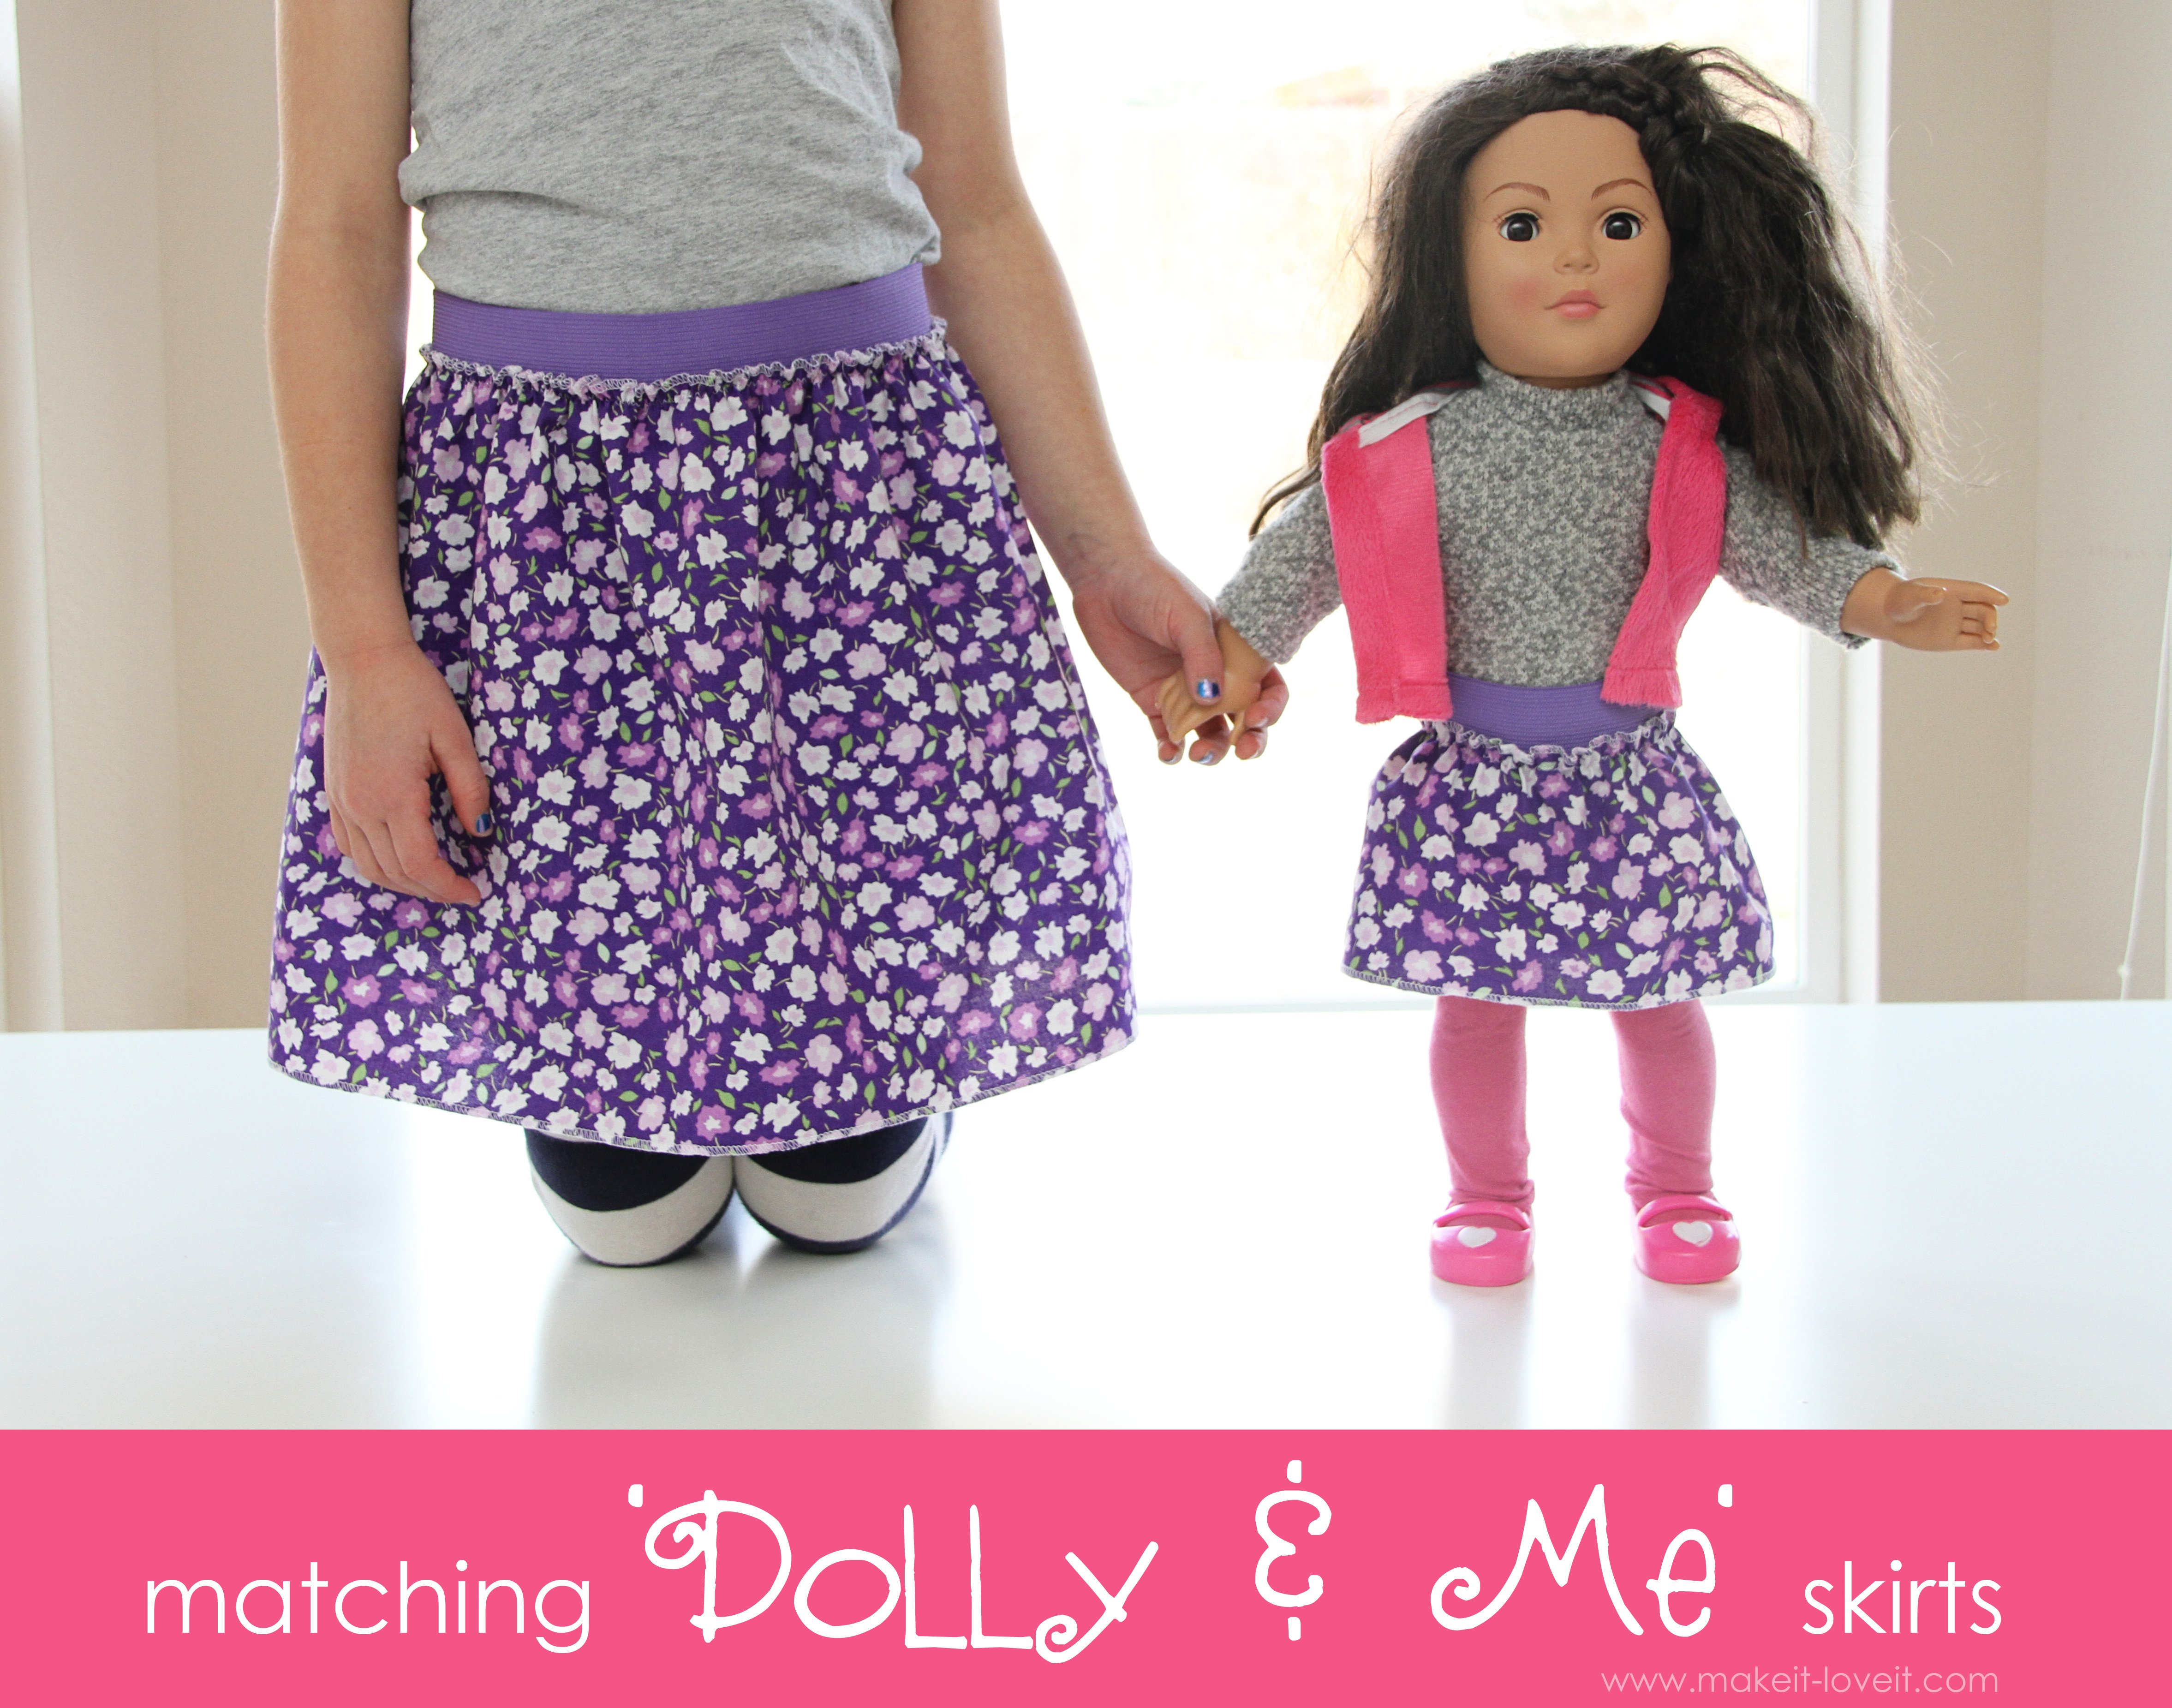 Matching 'Dolly & Me' Skirts